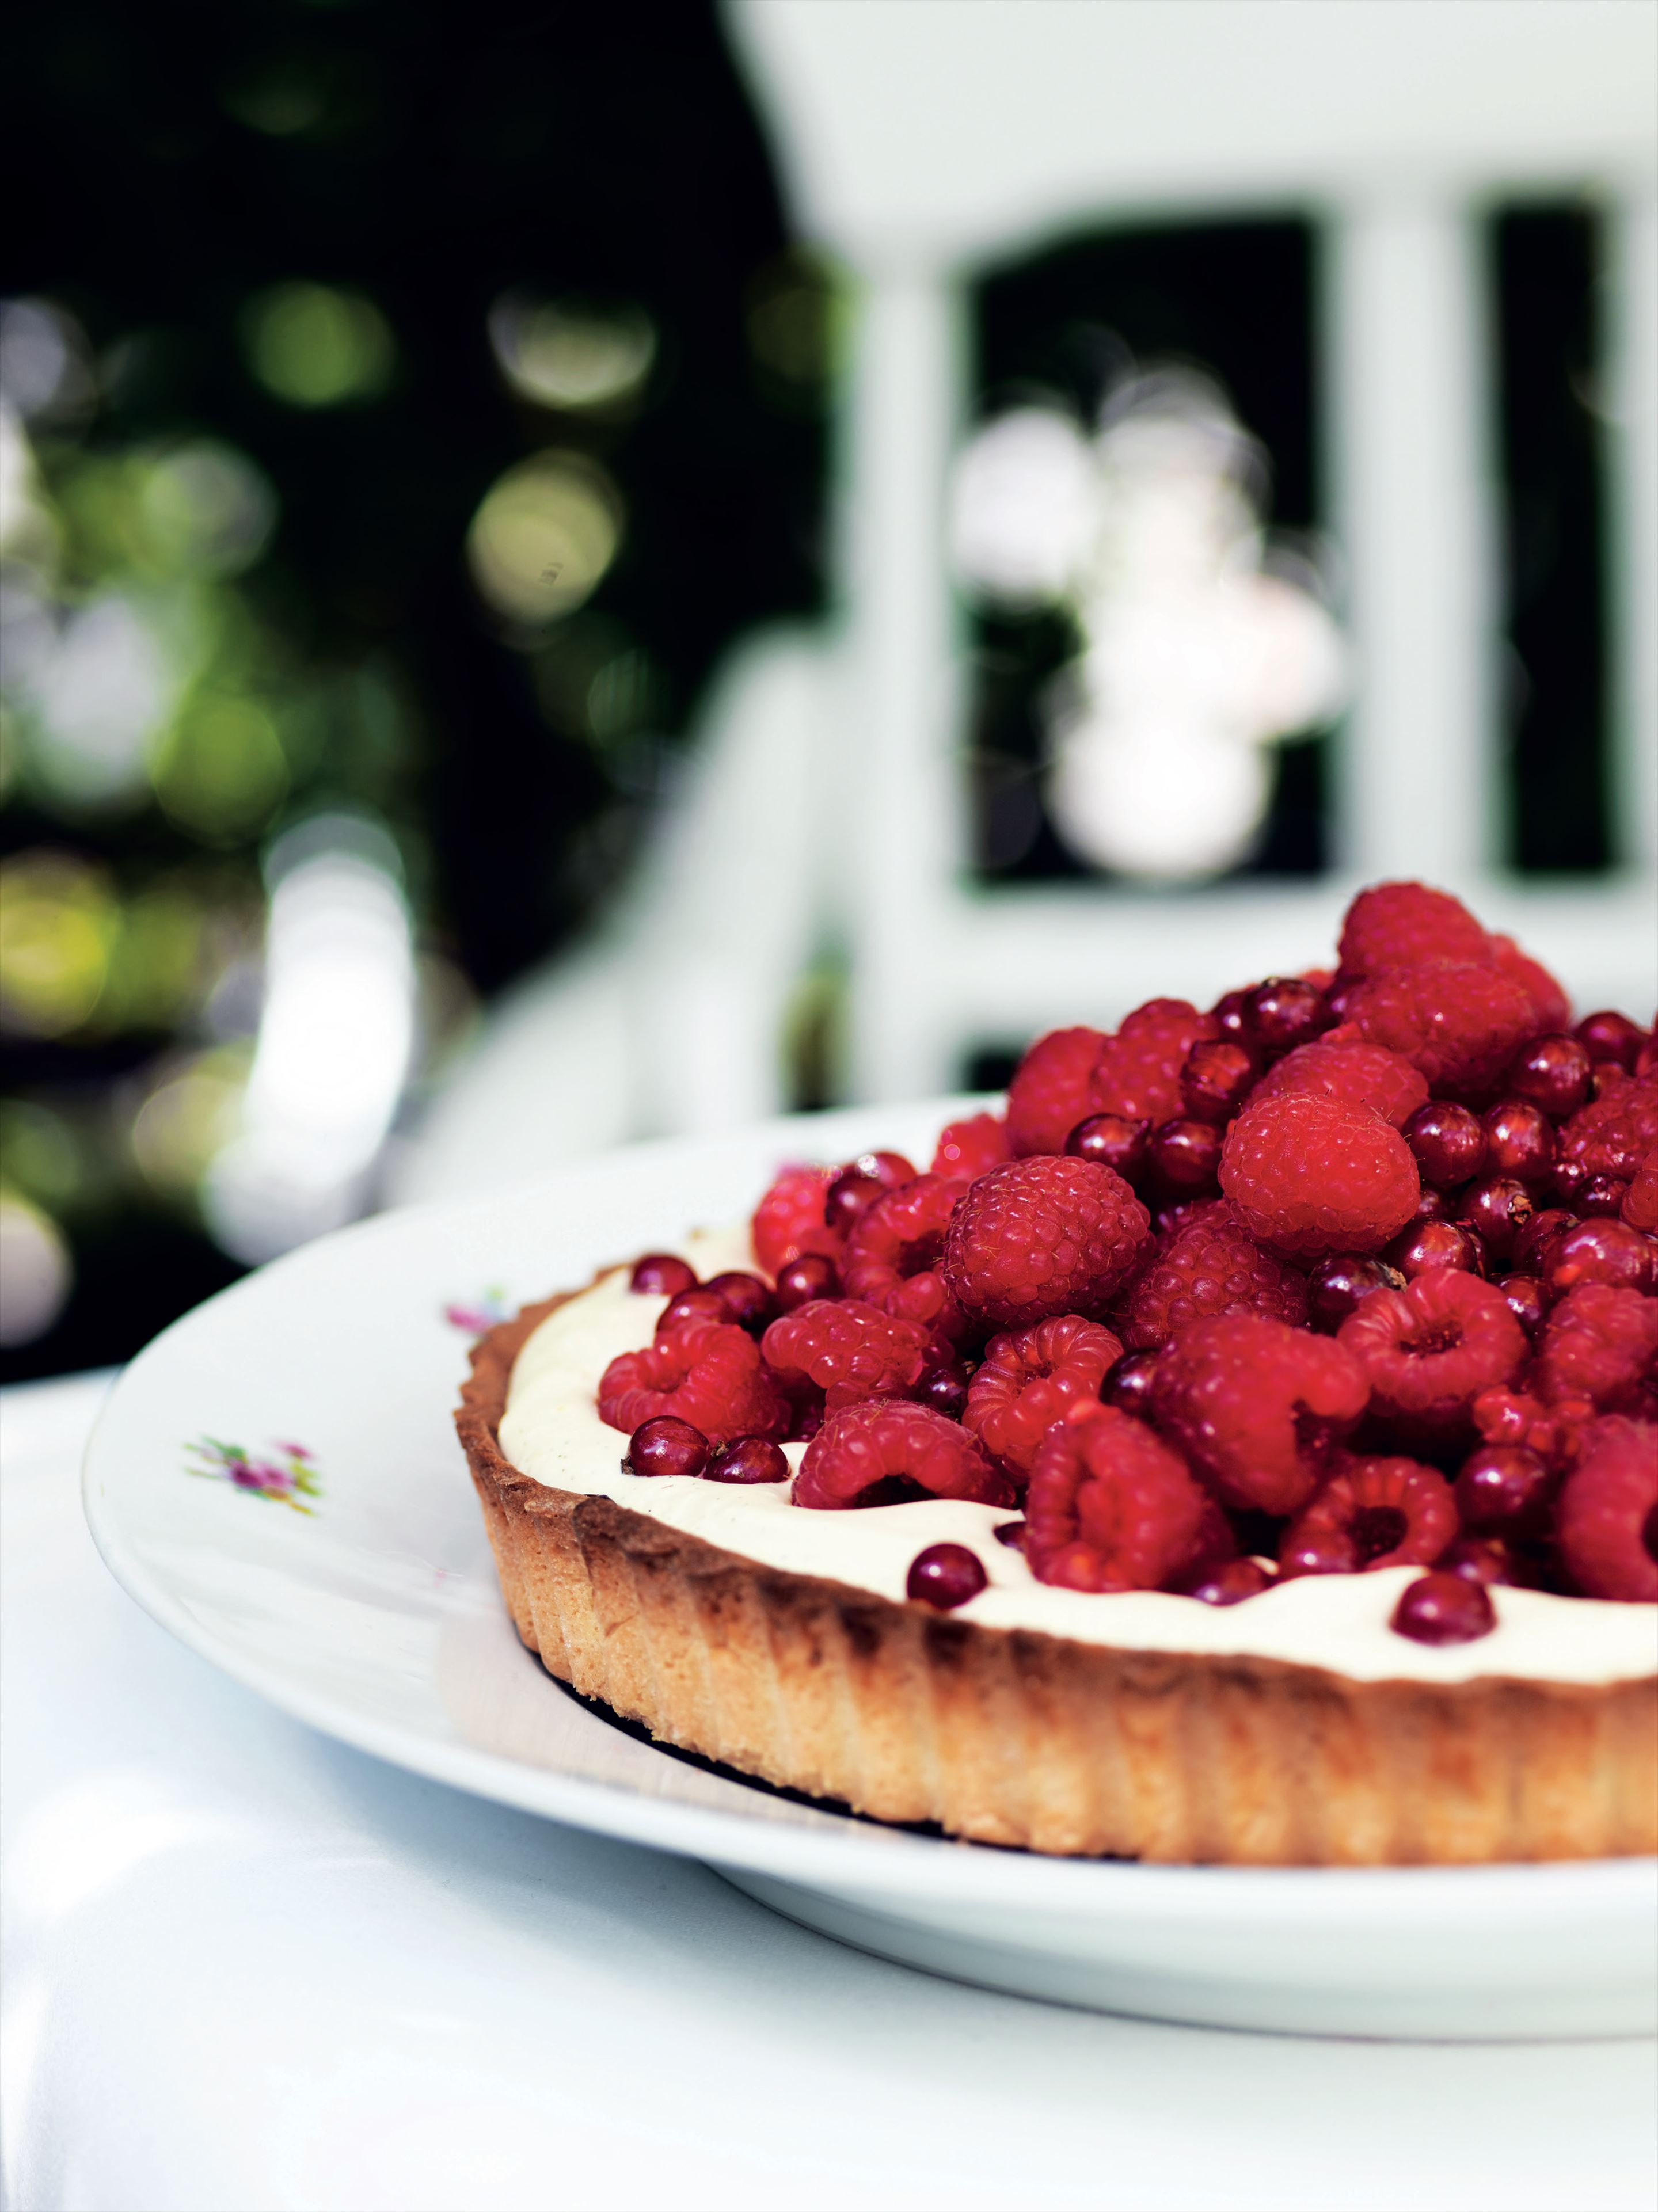 Raspberry and redcurrant tart